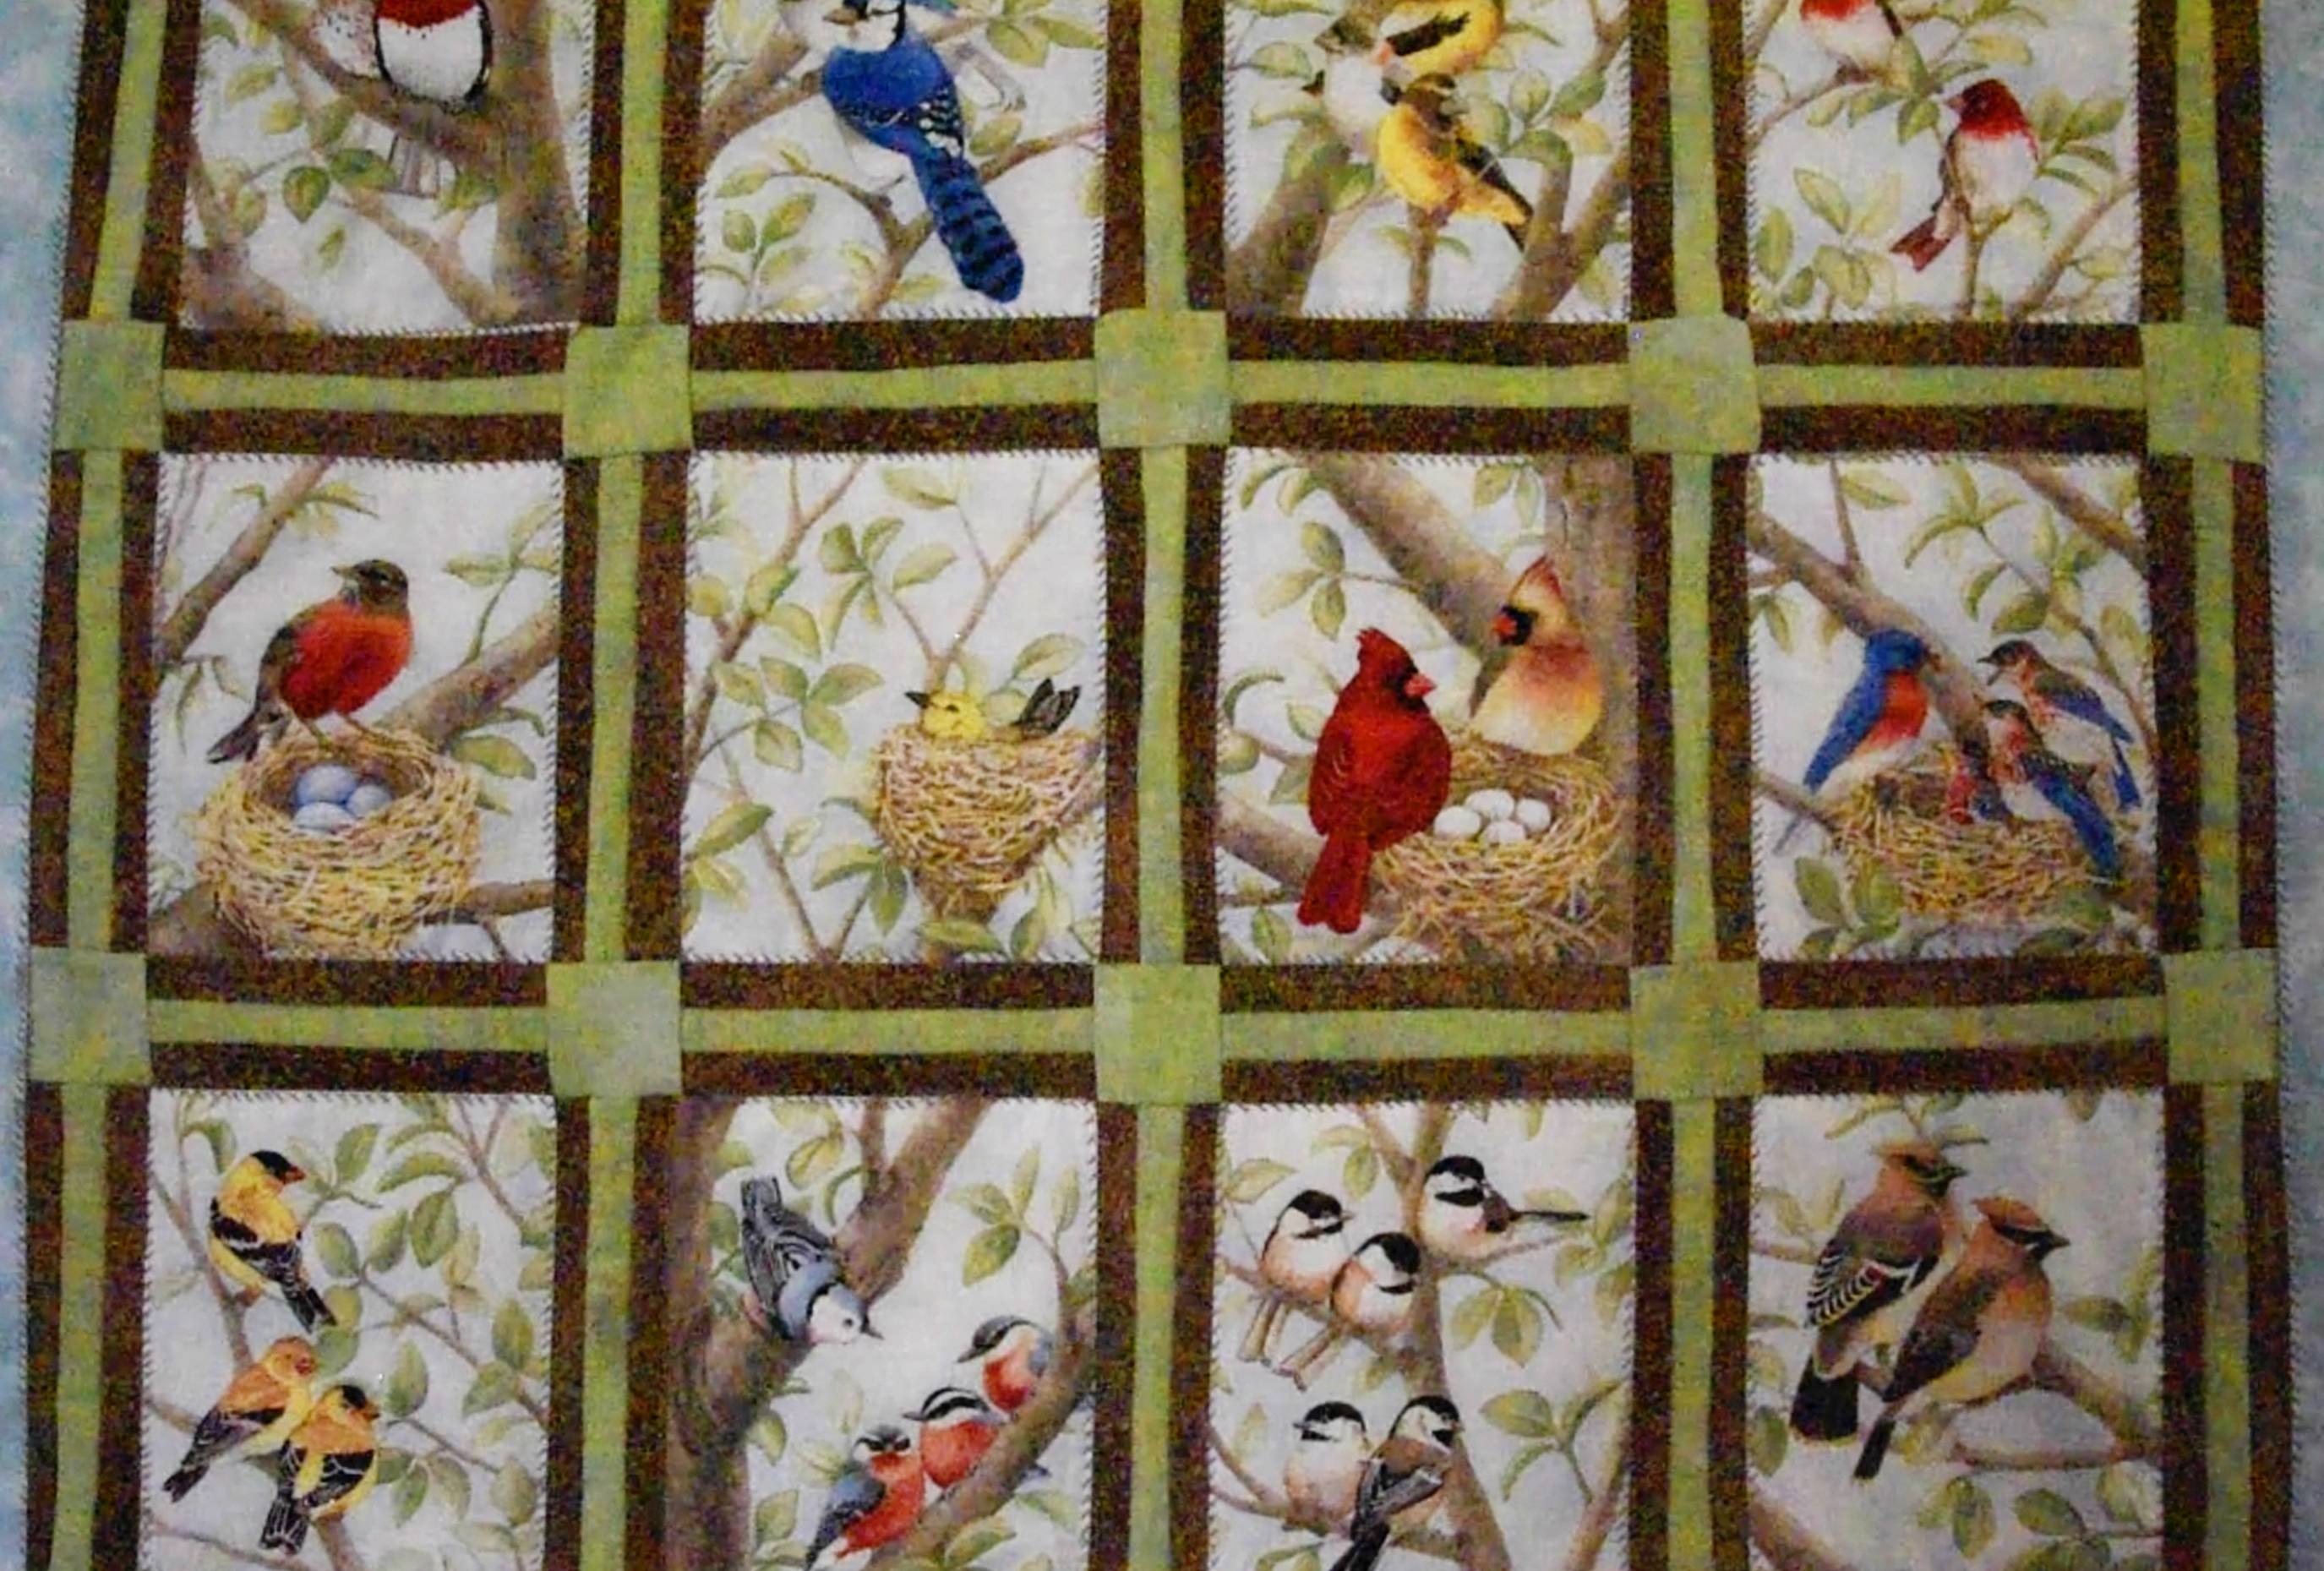 A prized possession of former Kane County Audubon President Bob Montgomery is a quilt made by his late wife, Sharron. His East Dundee home is filled with images and sculptures of birds.